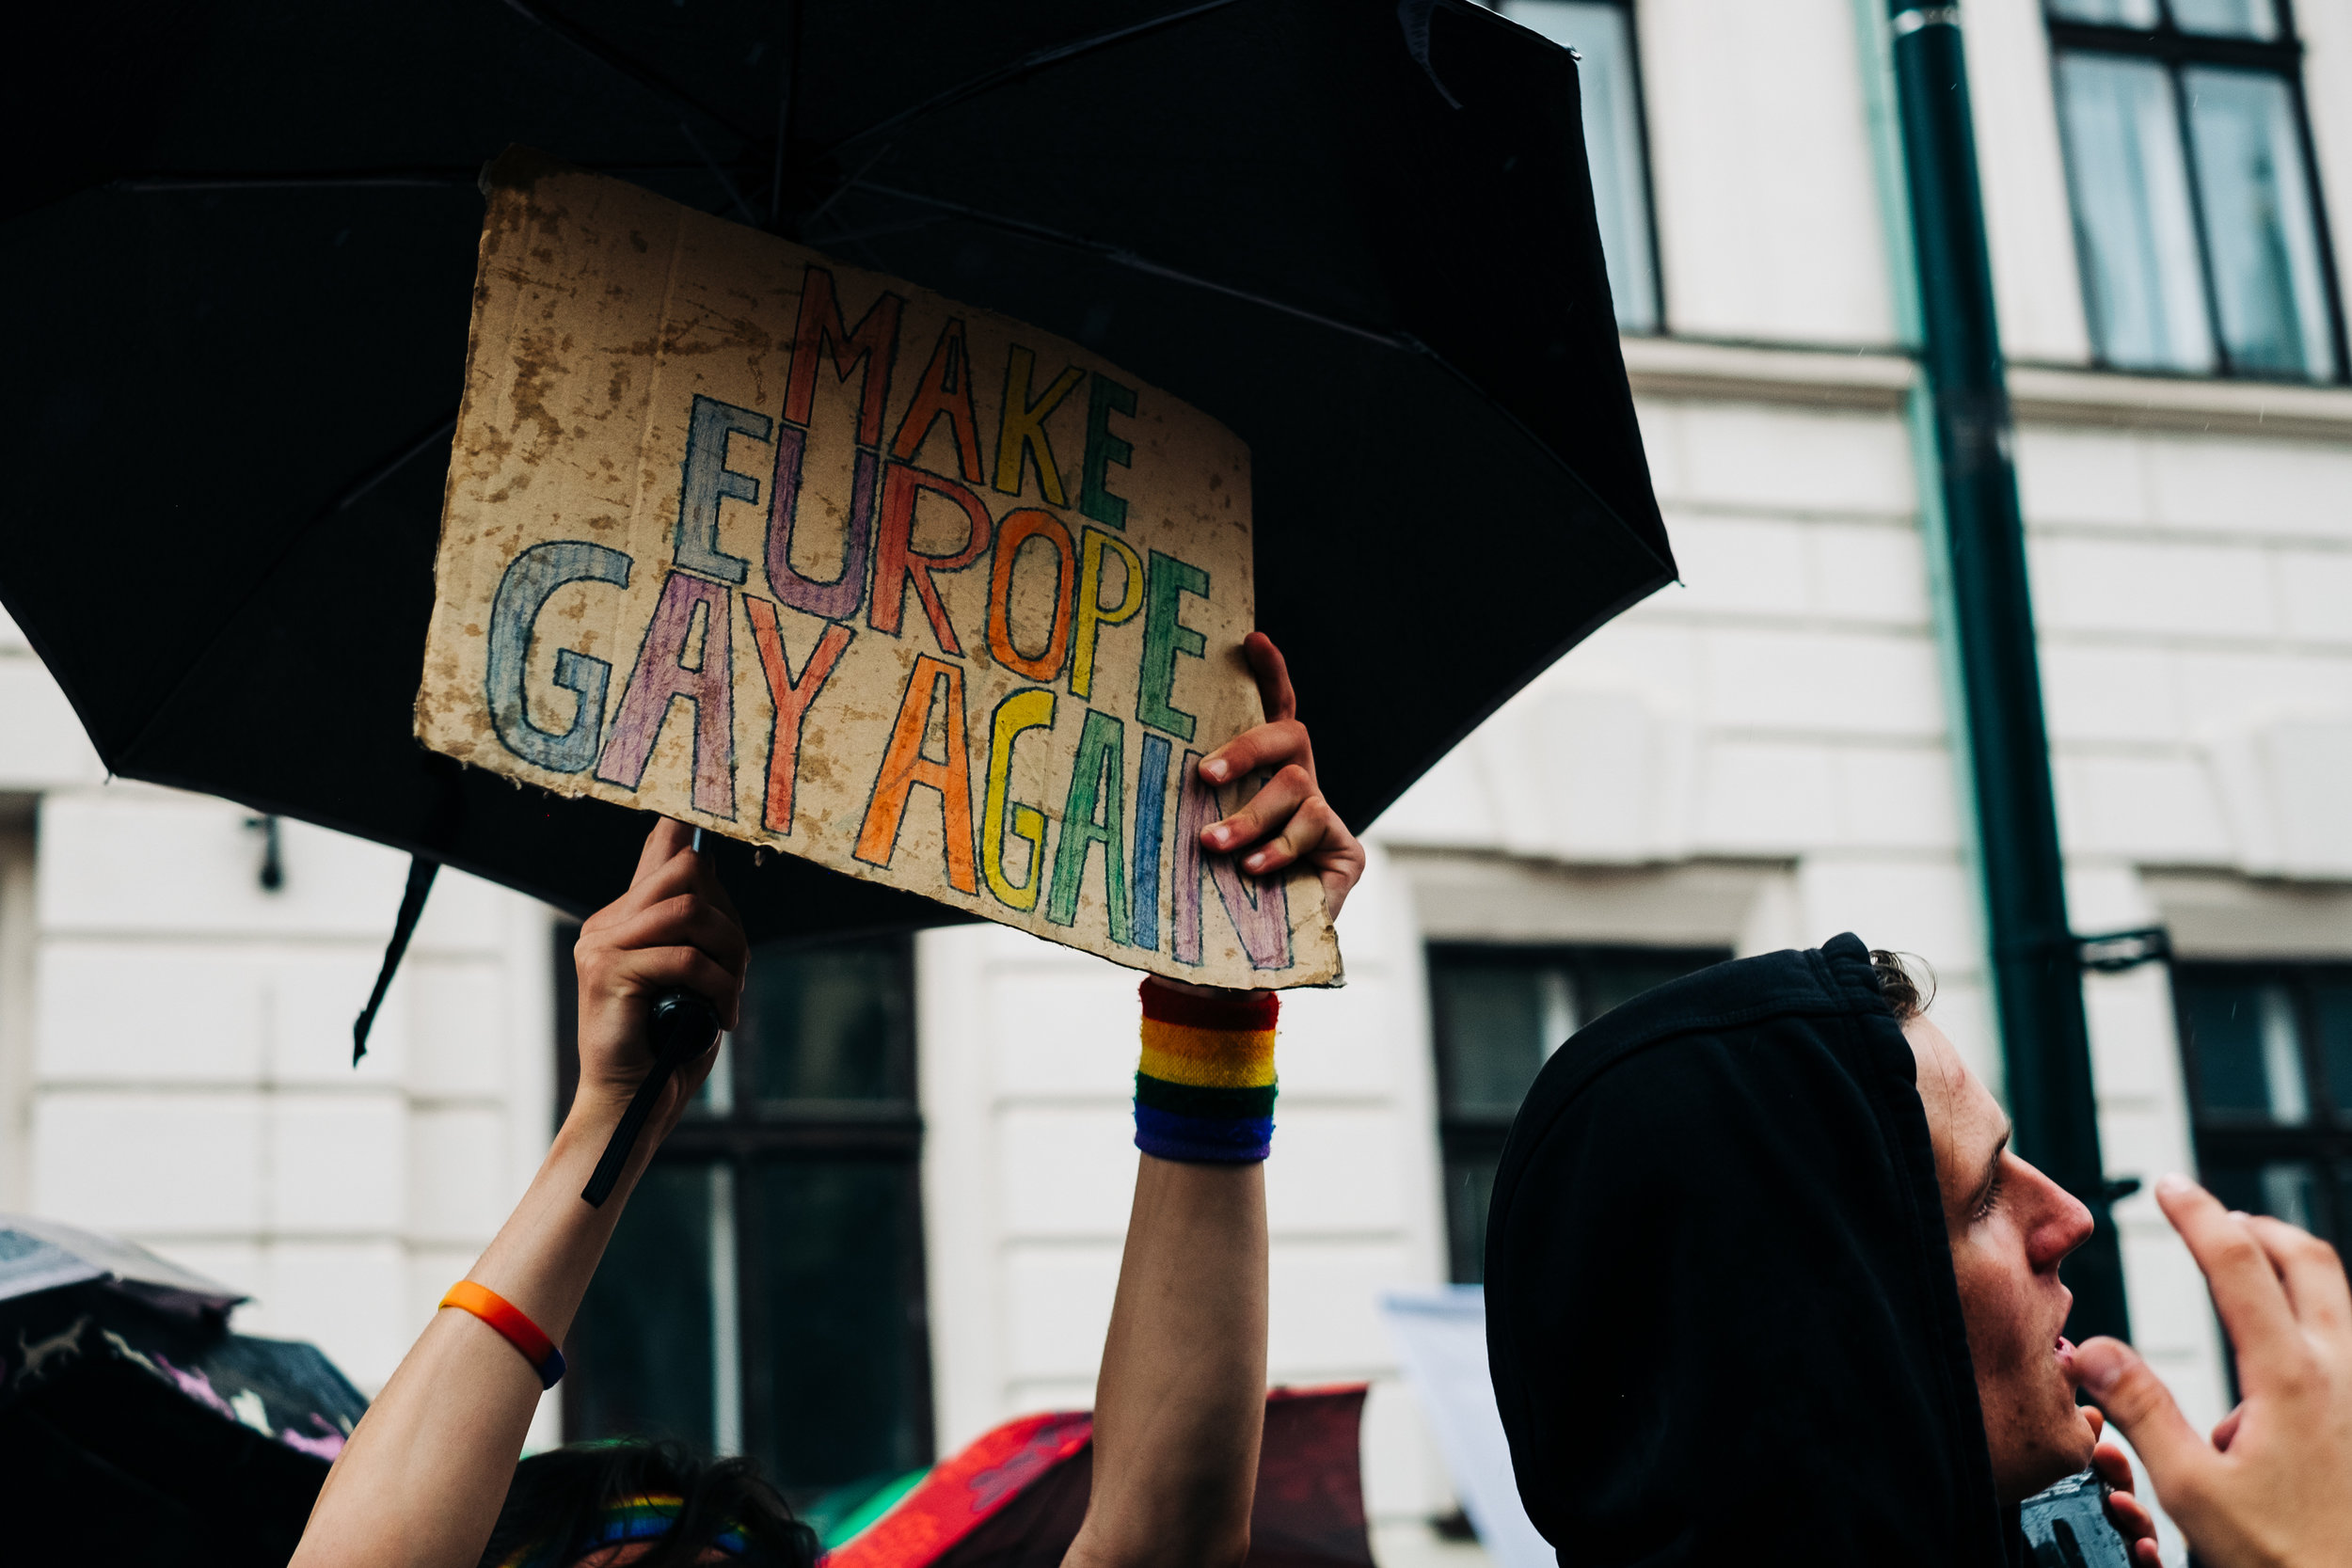 Prague Pride 2019 (33 of 47).jpg